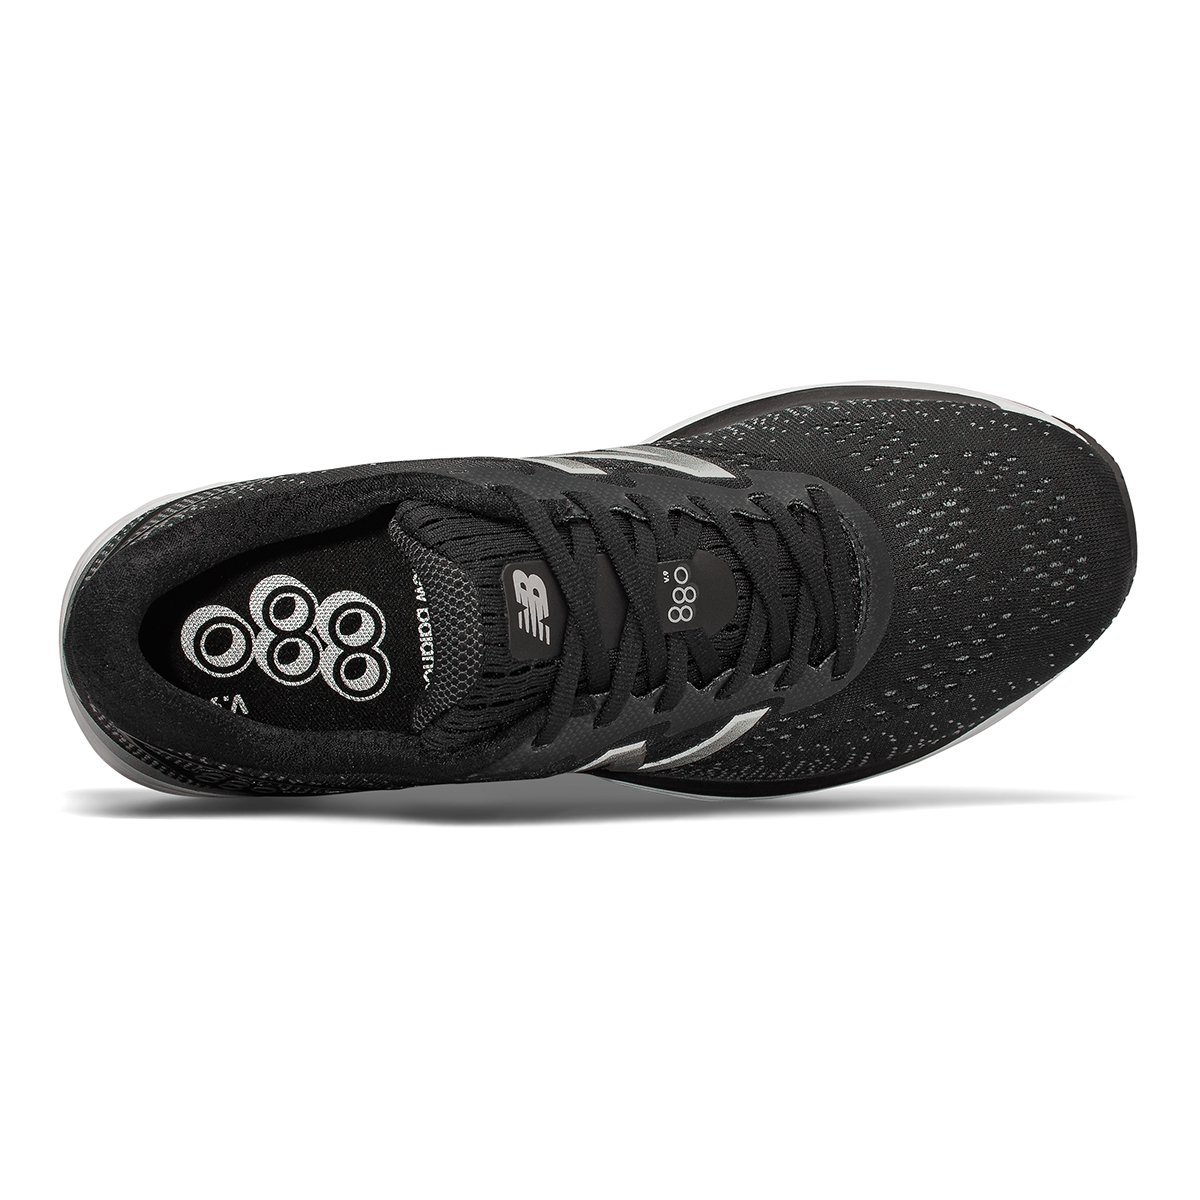 Men's New Balance 880V9 Running Shoe - Color: Black / Steel (Regular Width) - Size: 8, Black / Steel, large, image 4